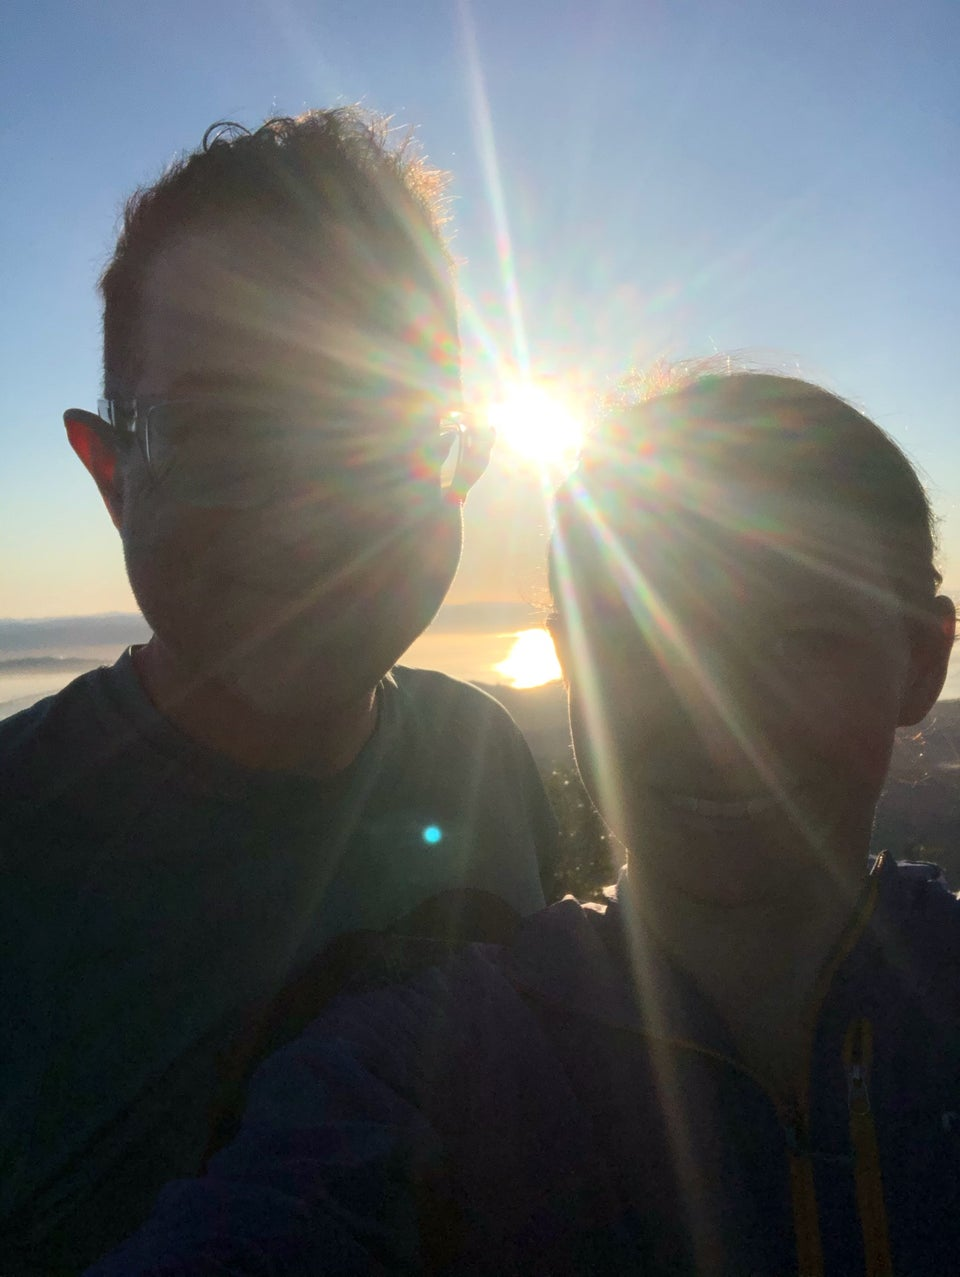 Tantek and Hannah with the sun shining brightly between them, sunbeams across their faces, the bay in the distance glowing with the sun, tiny East Bay hills in the distance.